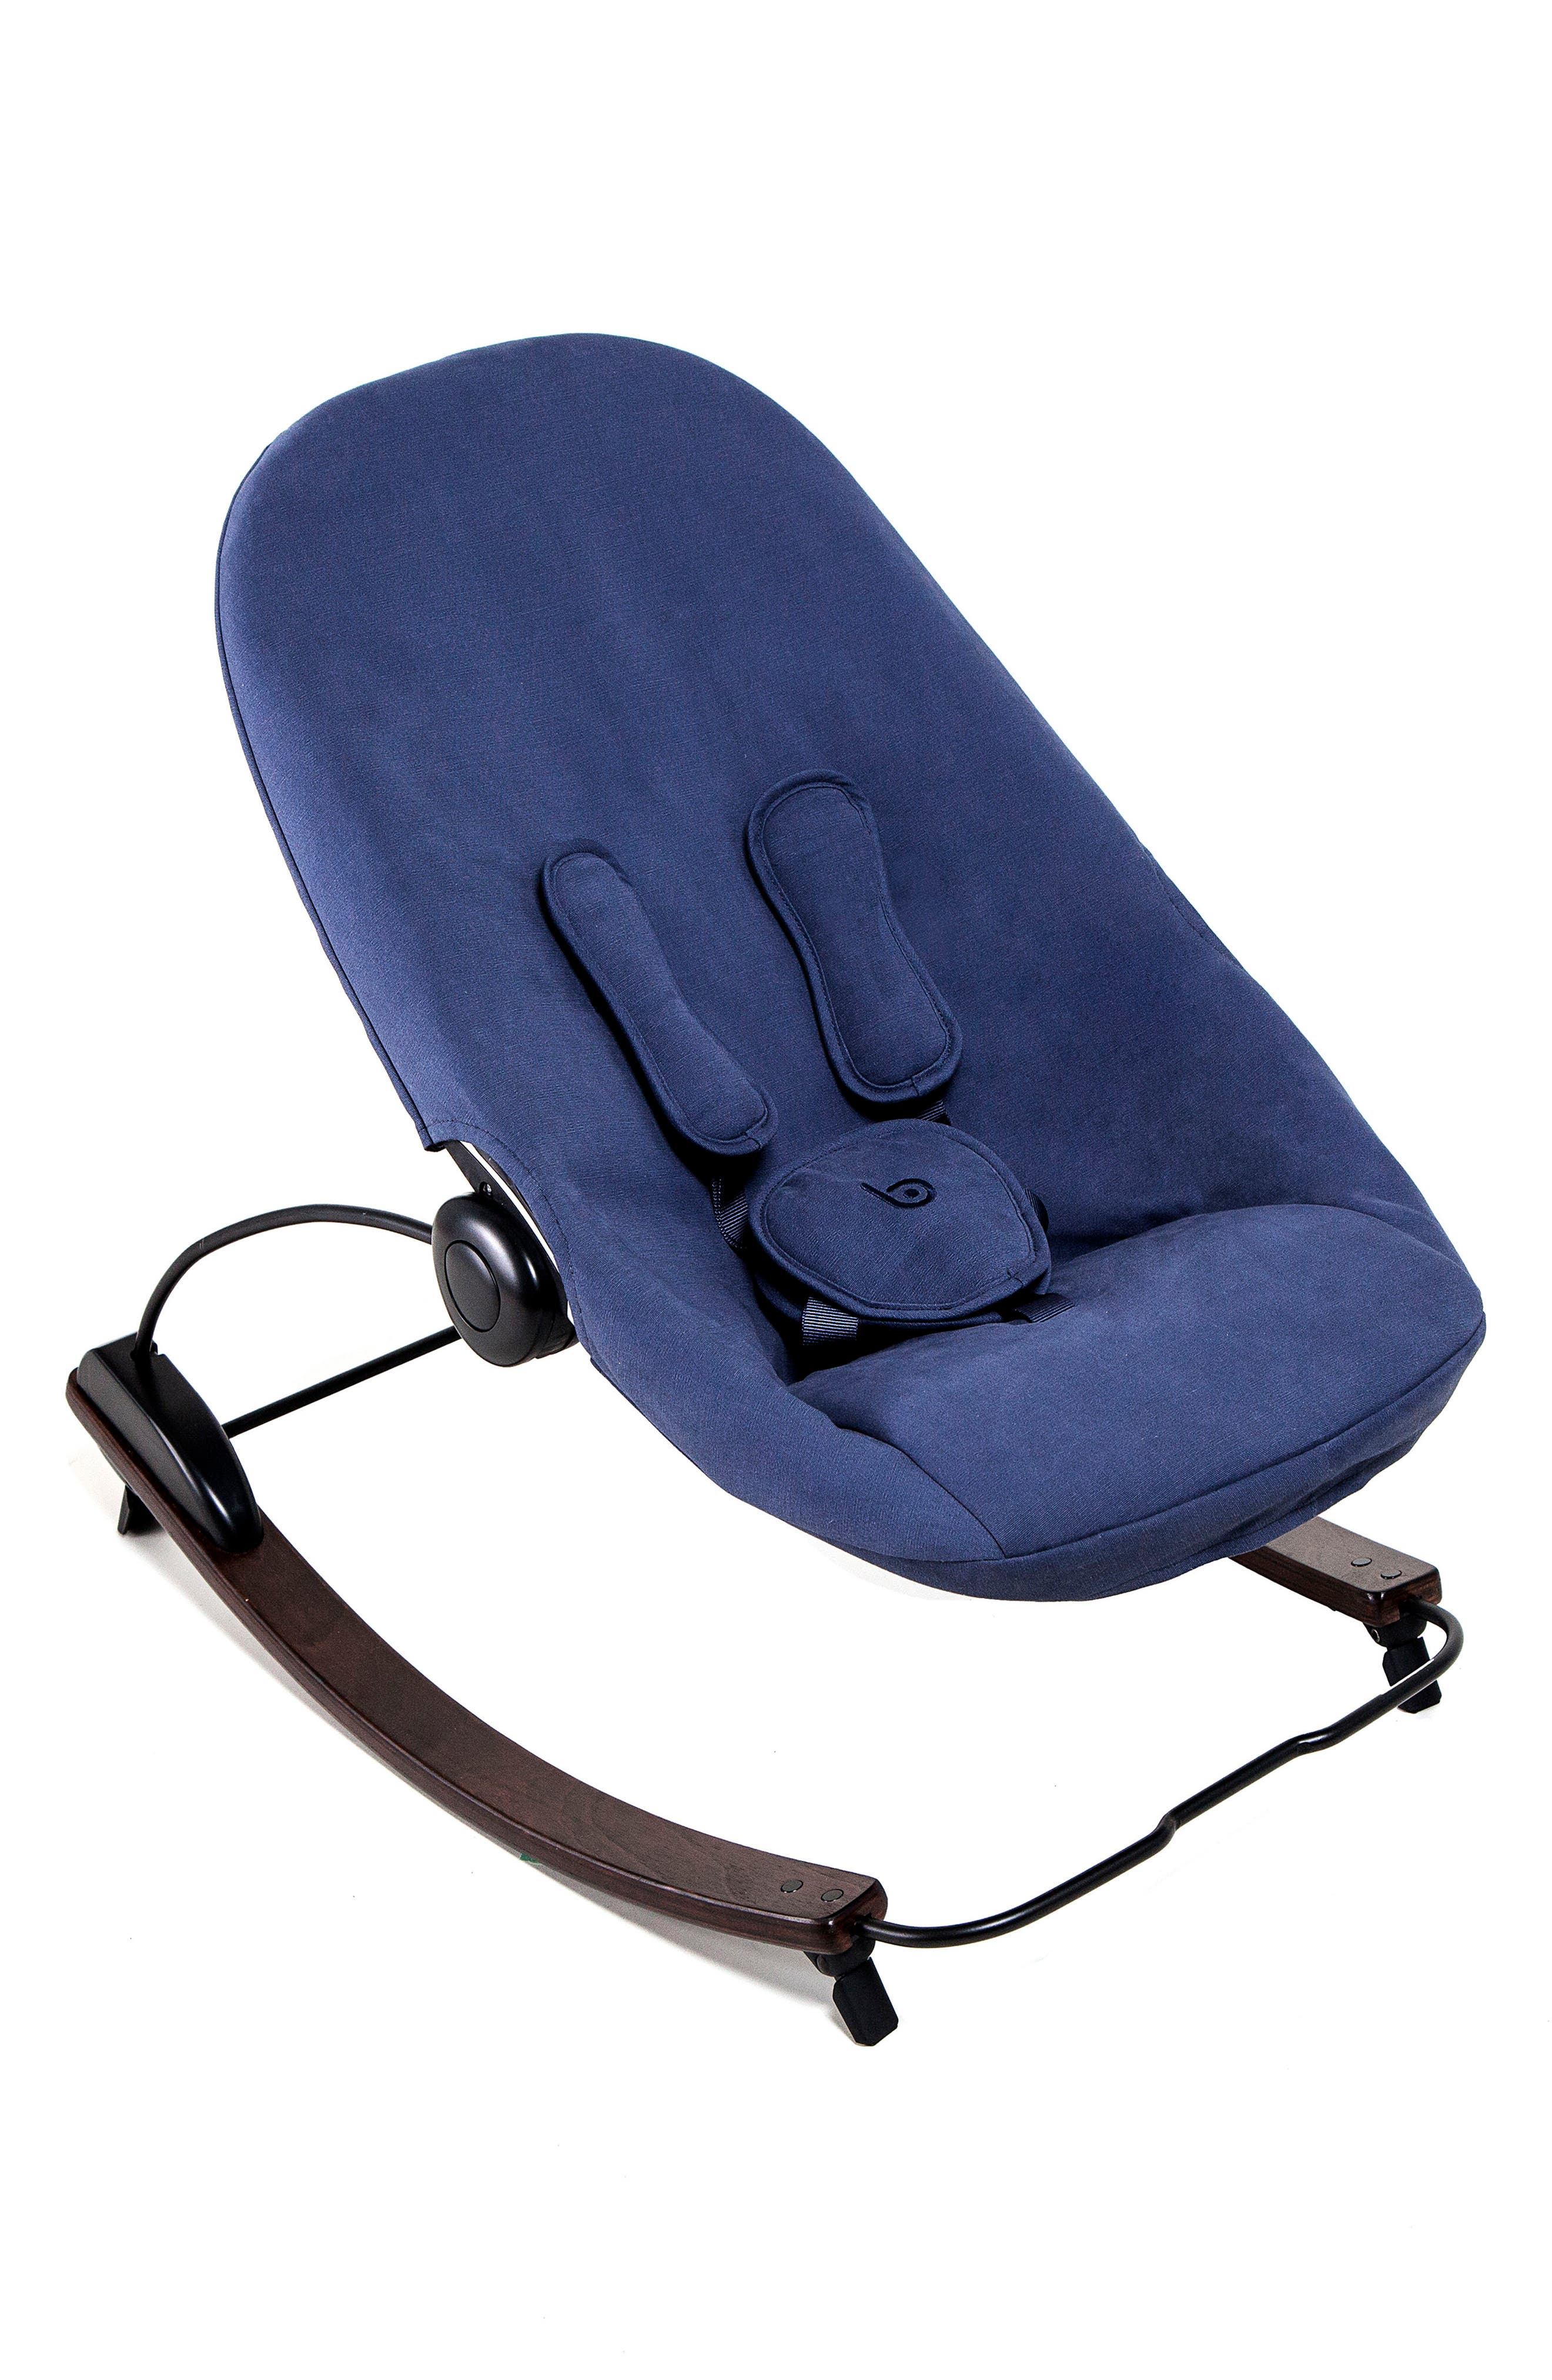 Infant Bloom Coco Go 3In1 Infant Lounger Size One Size  Blue